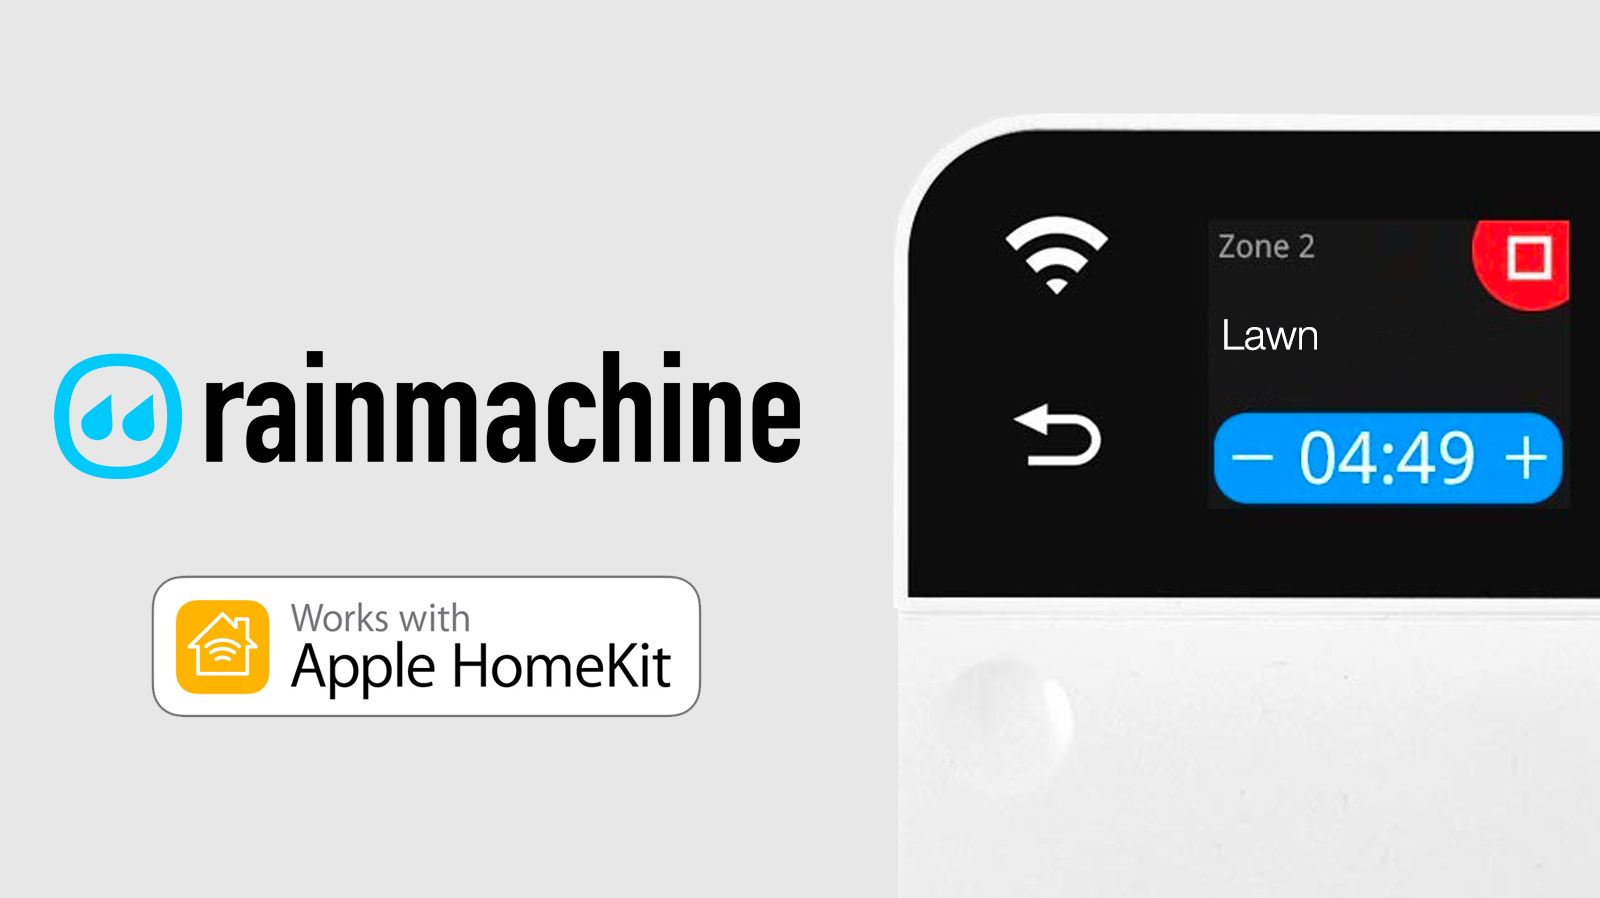 works-with-apple-homekit.png